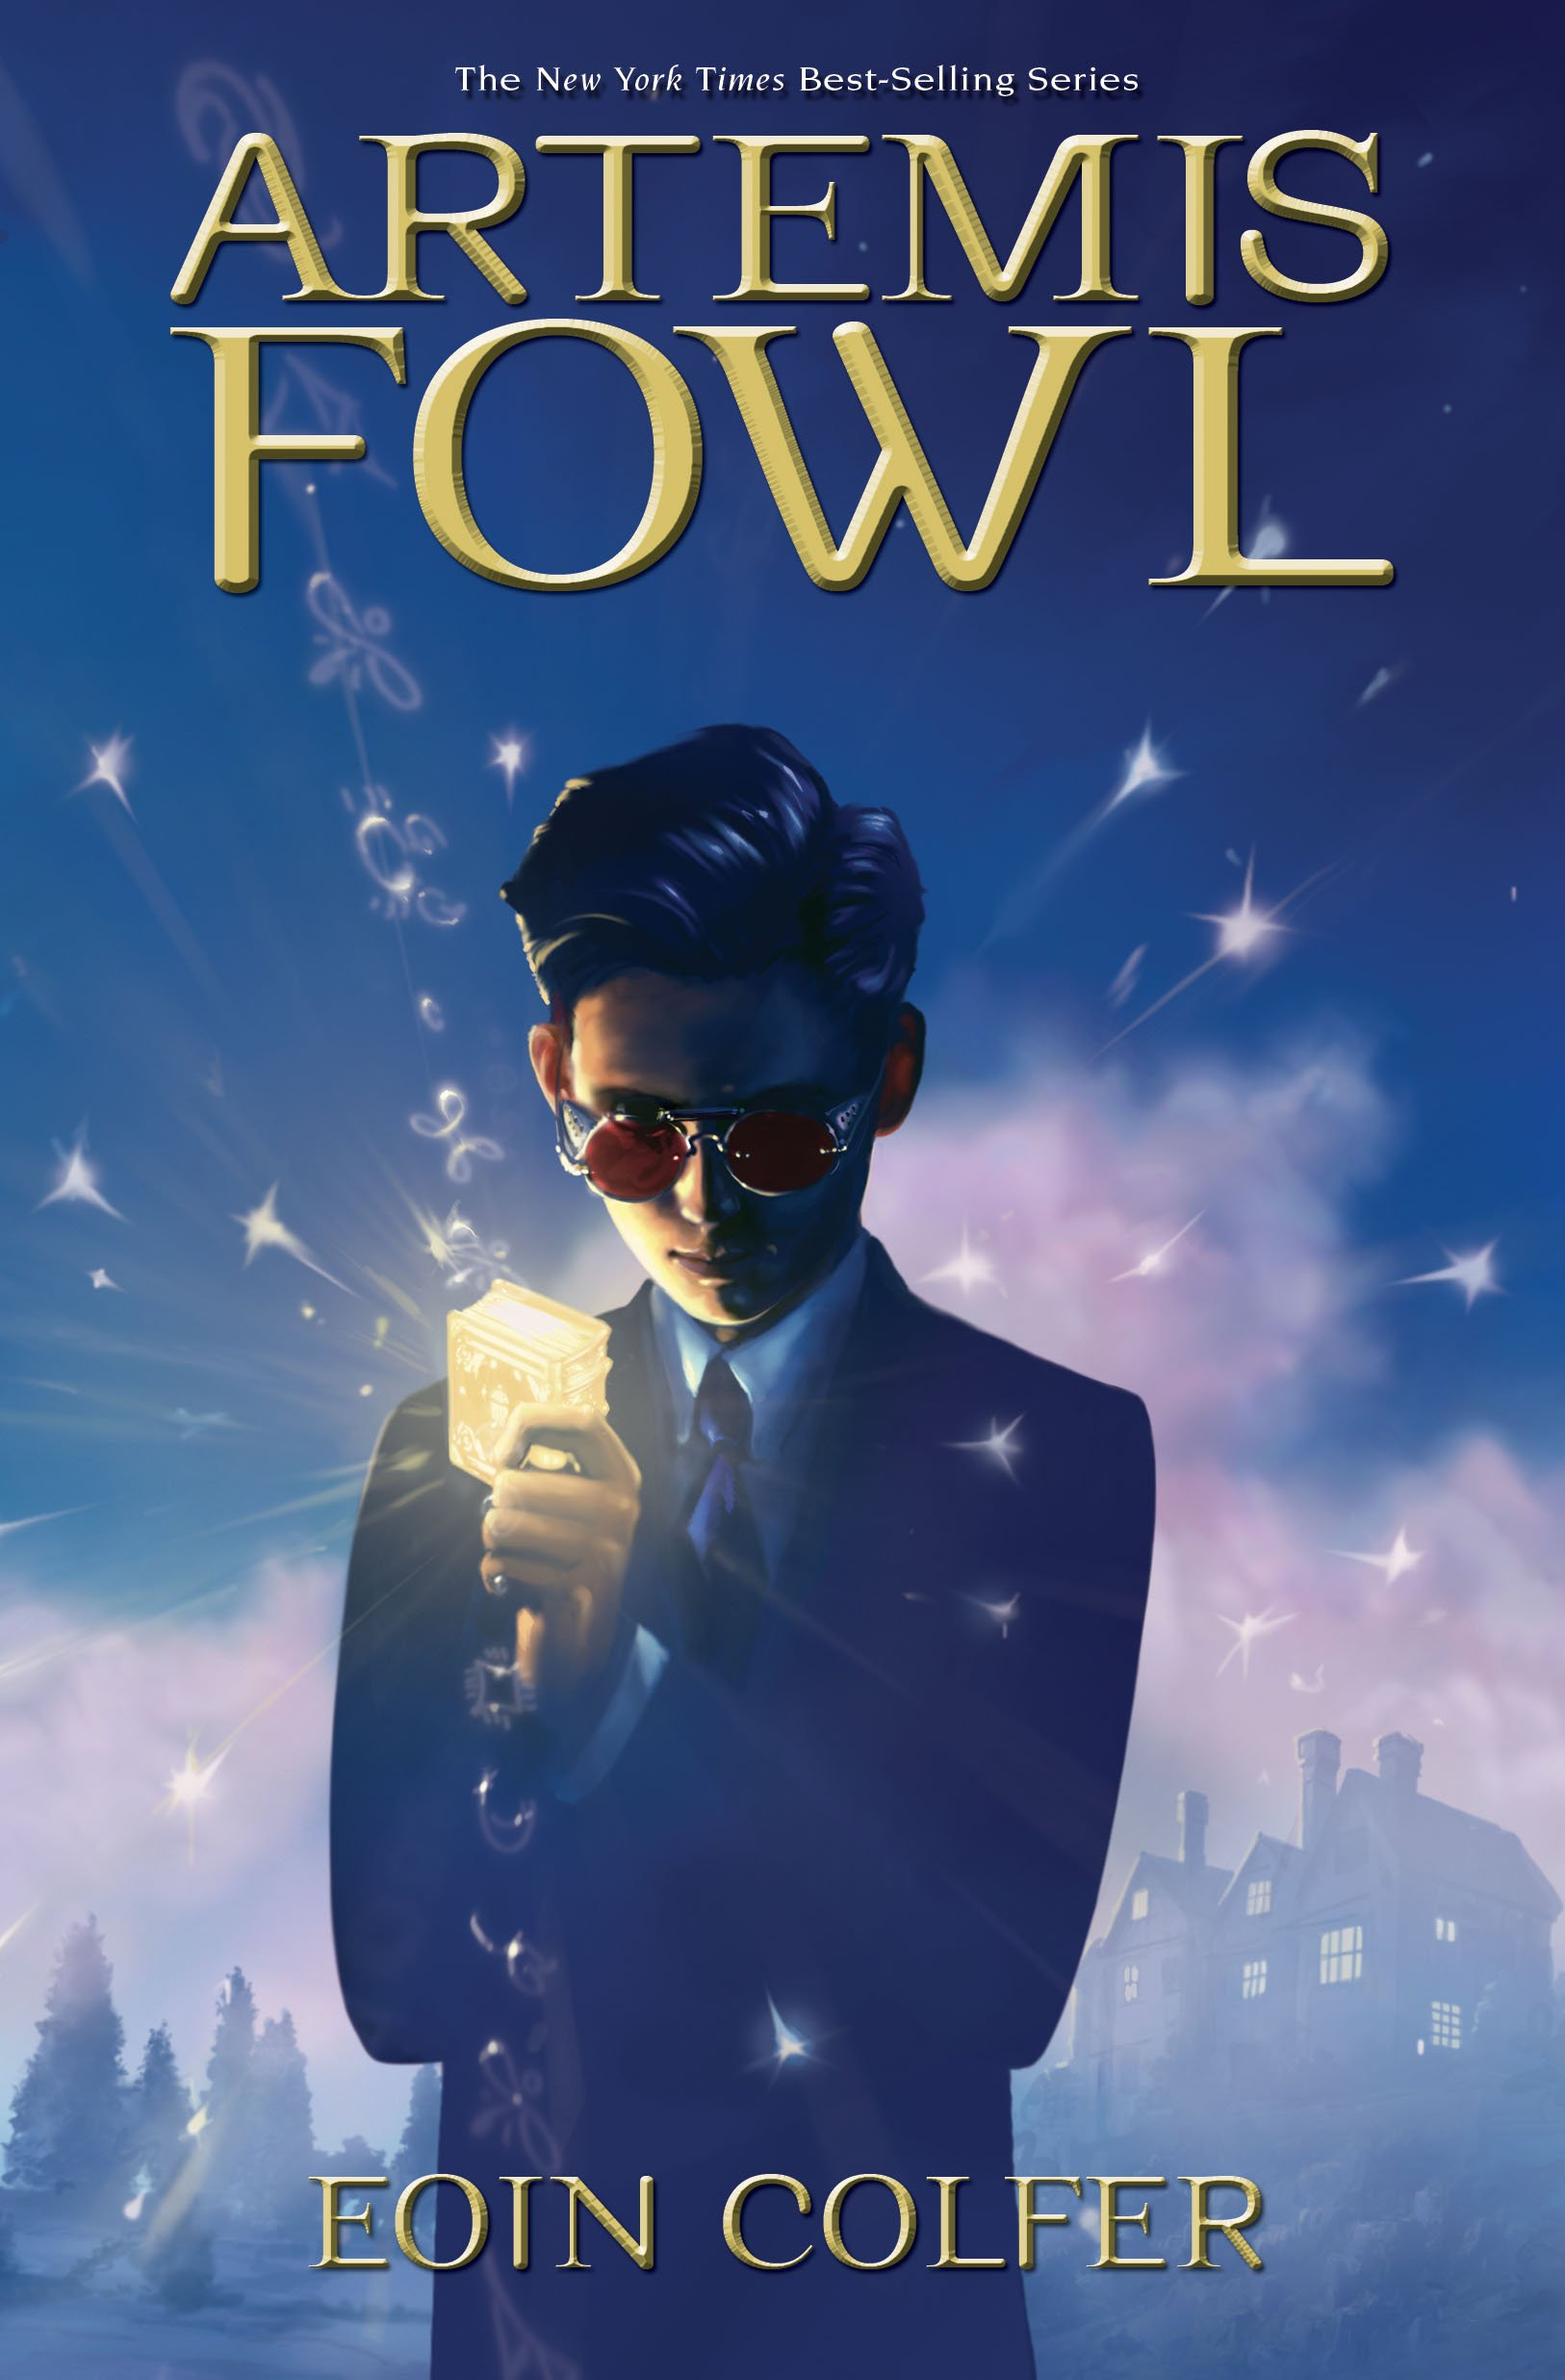 Book Review: Artemis Fowl series by Eoin Colfer